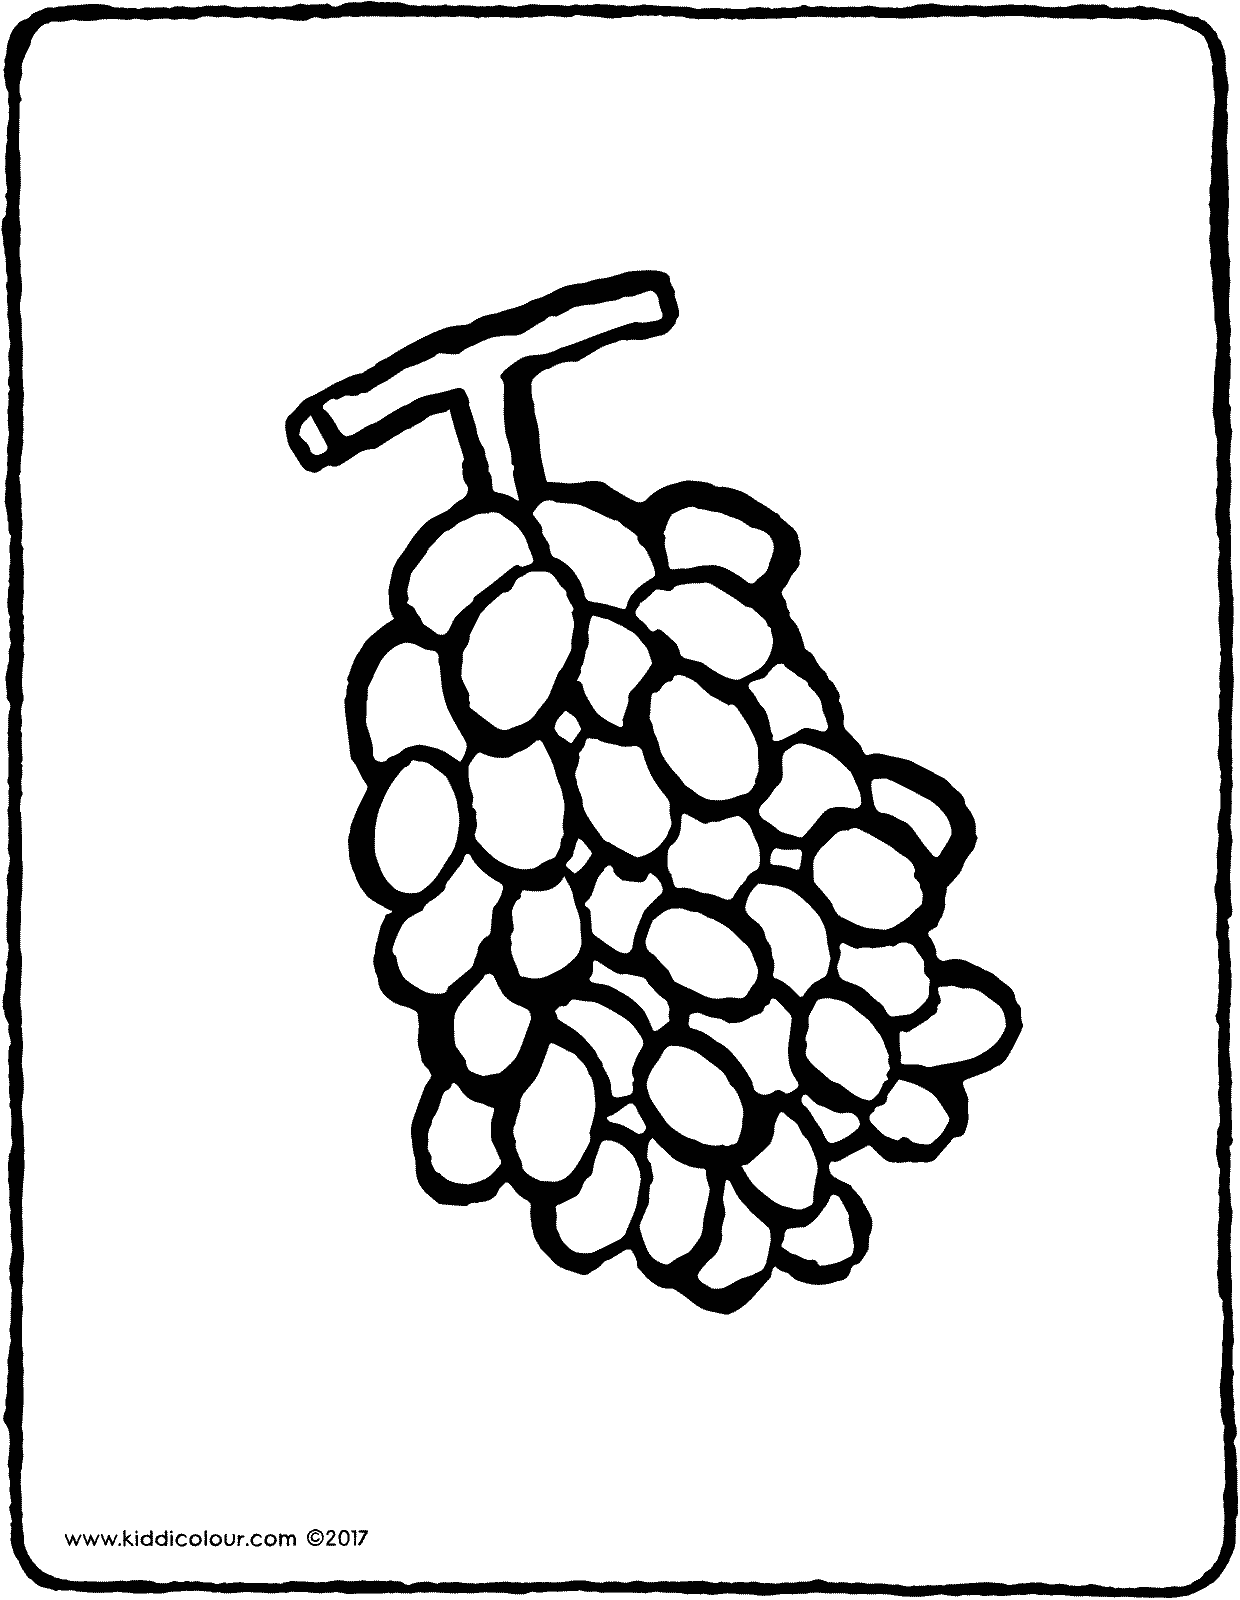 coloring picture of grapes free grapes coloring pages picture grapes coloring of